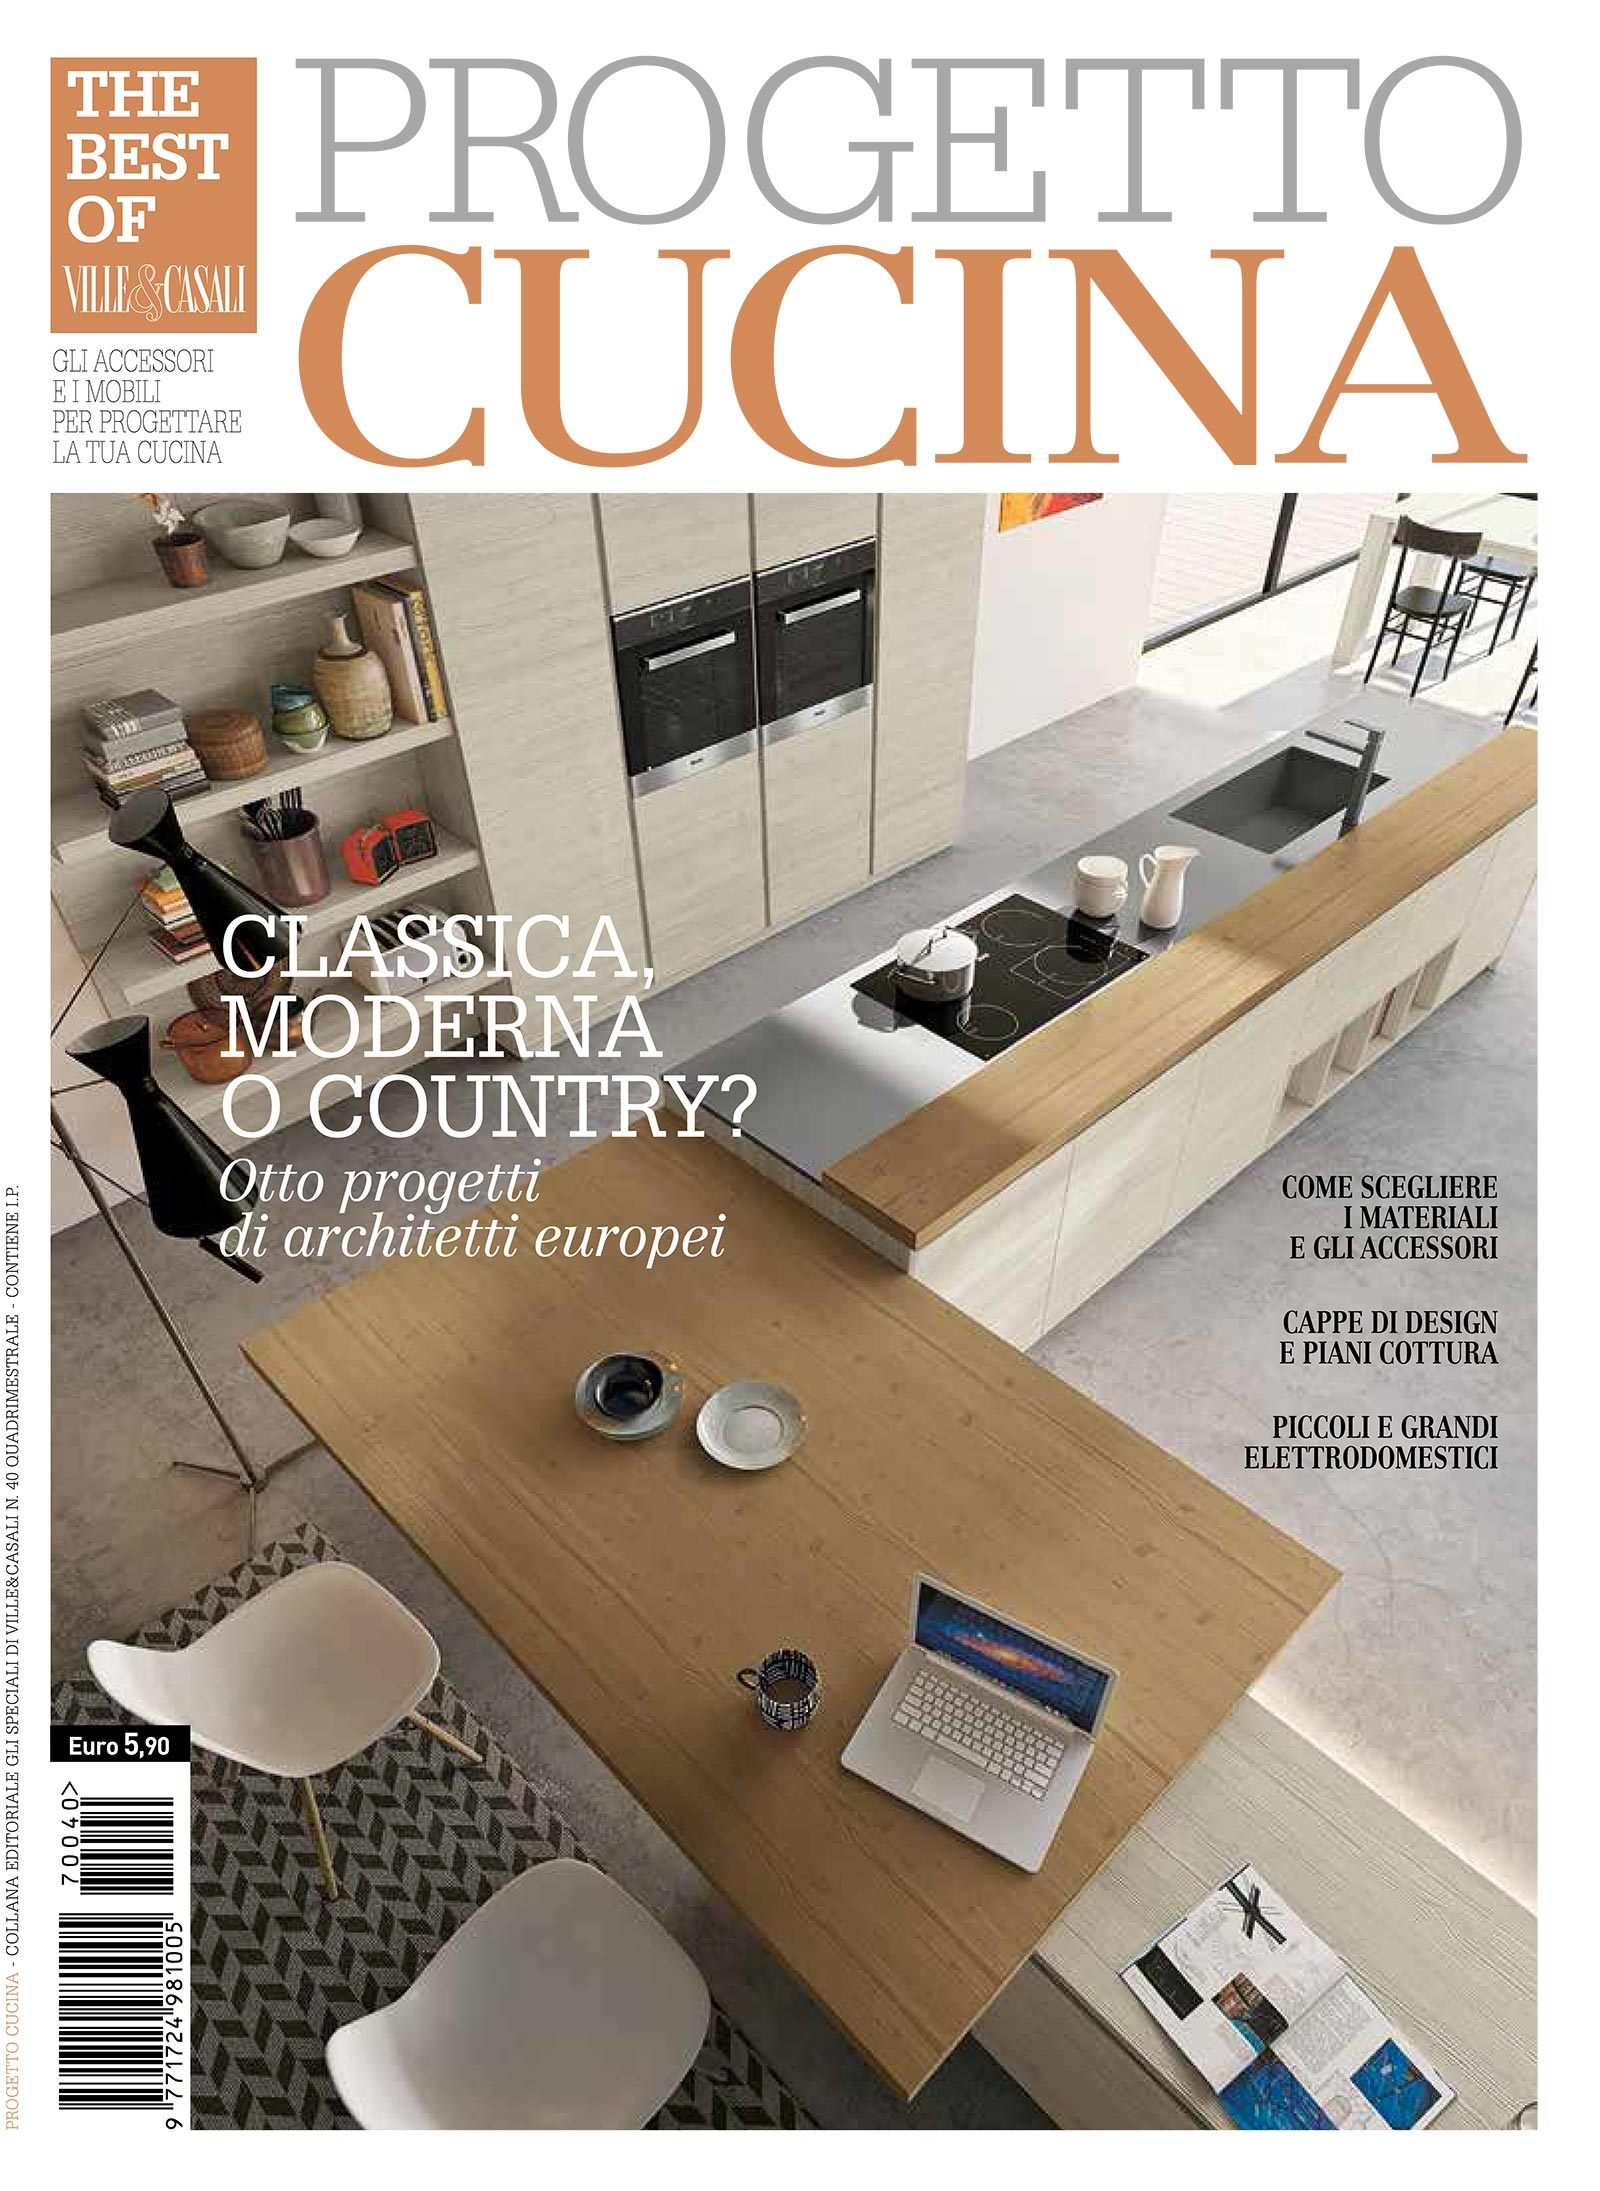 Made a Mano Press 2017 - 10 October - Progetto Casa Magazine - Minacciolo Mina Mare